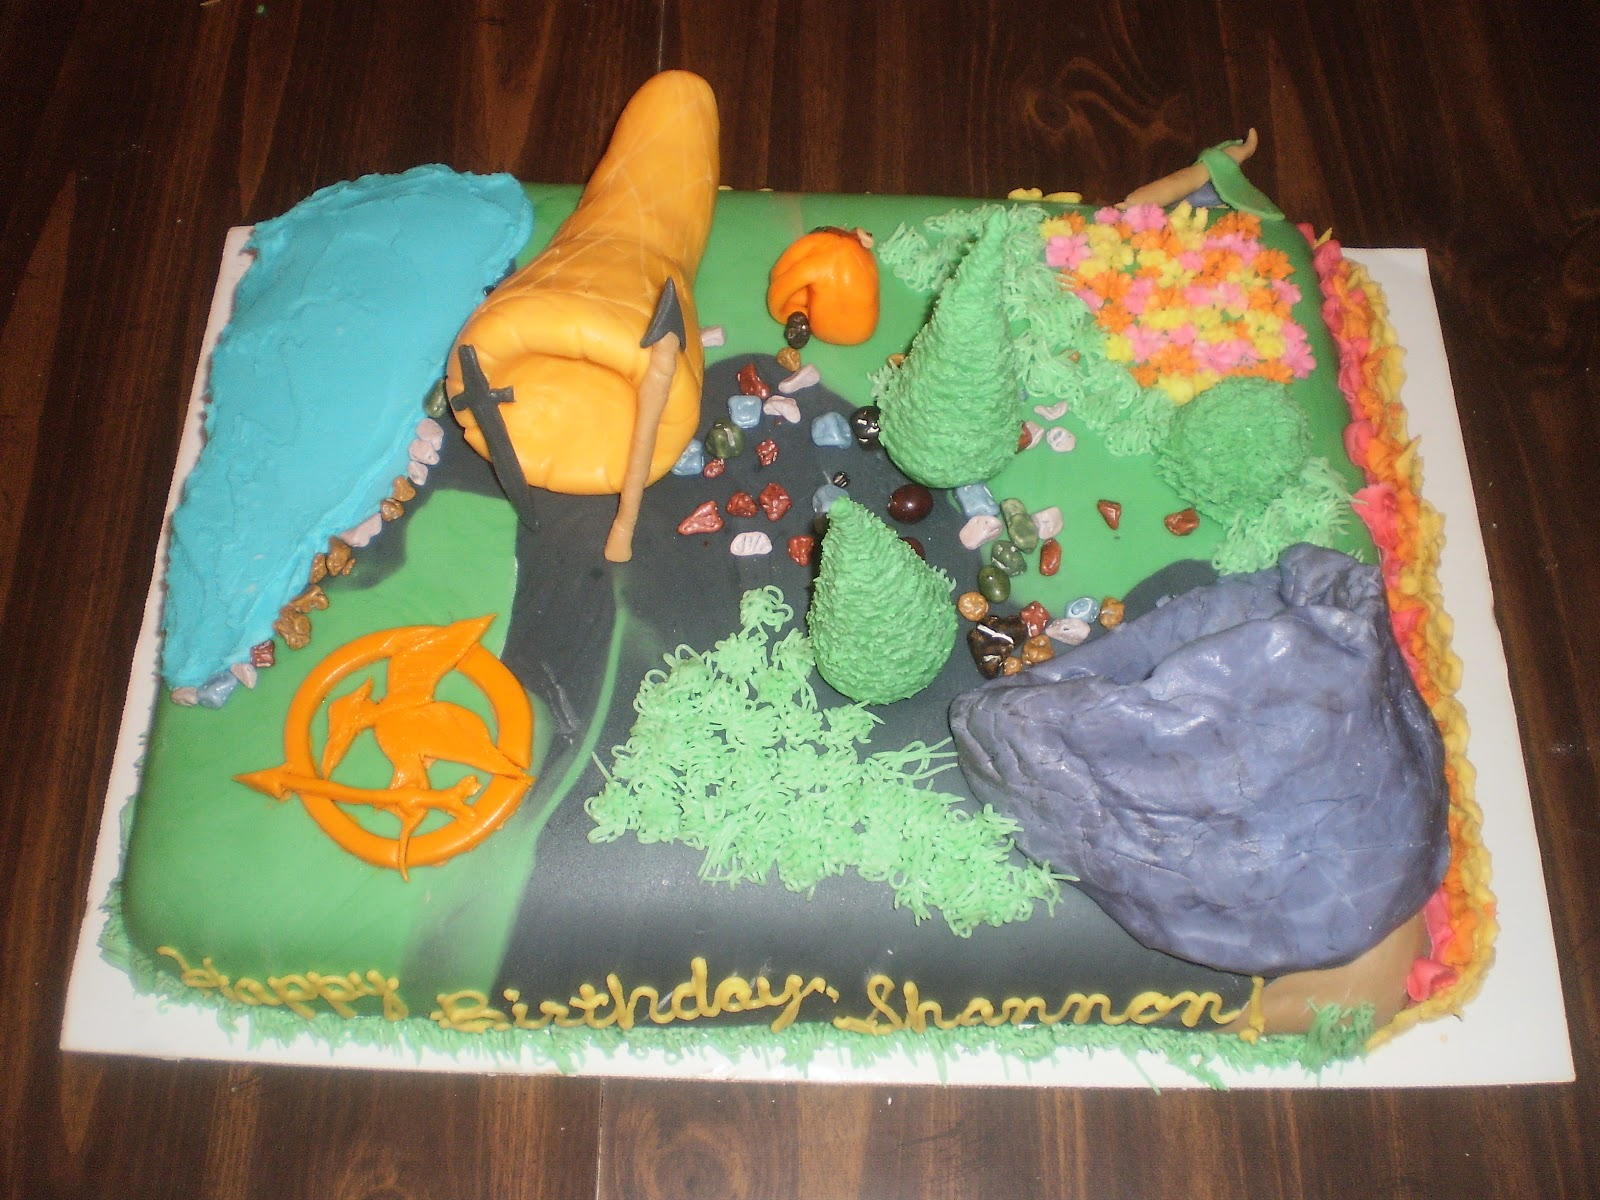 Meet Your Caker Hunger Games Cake